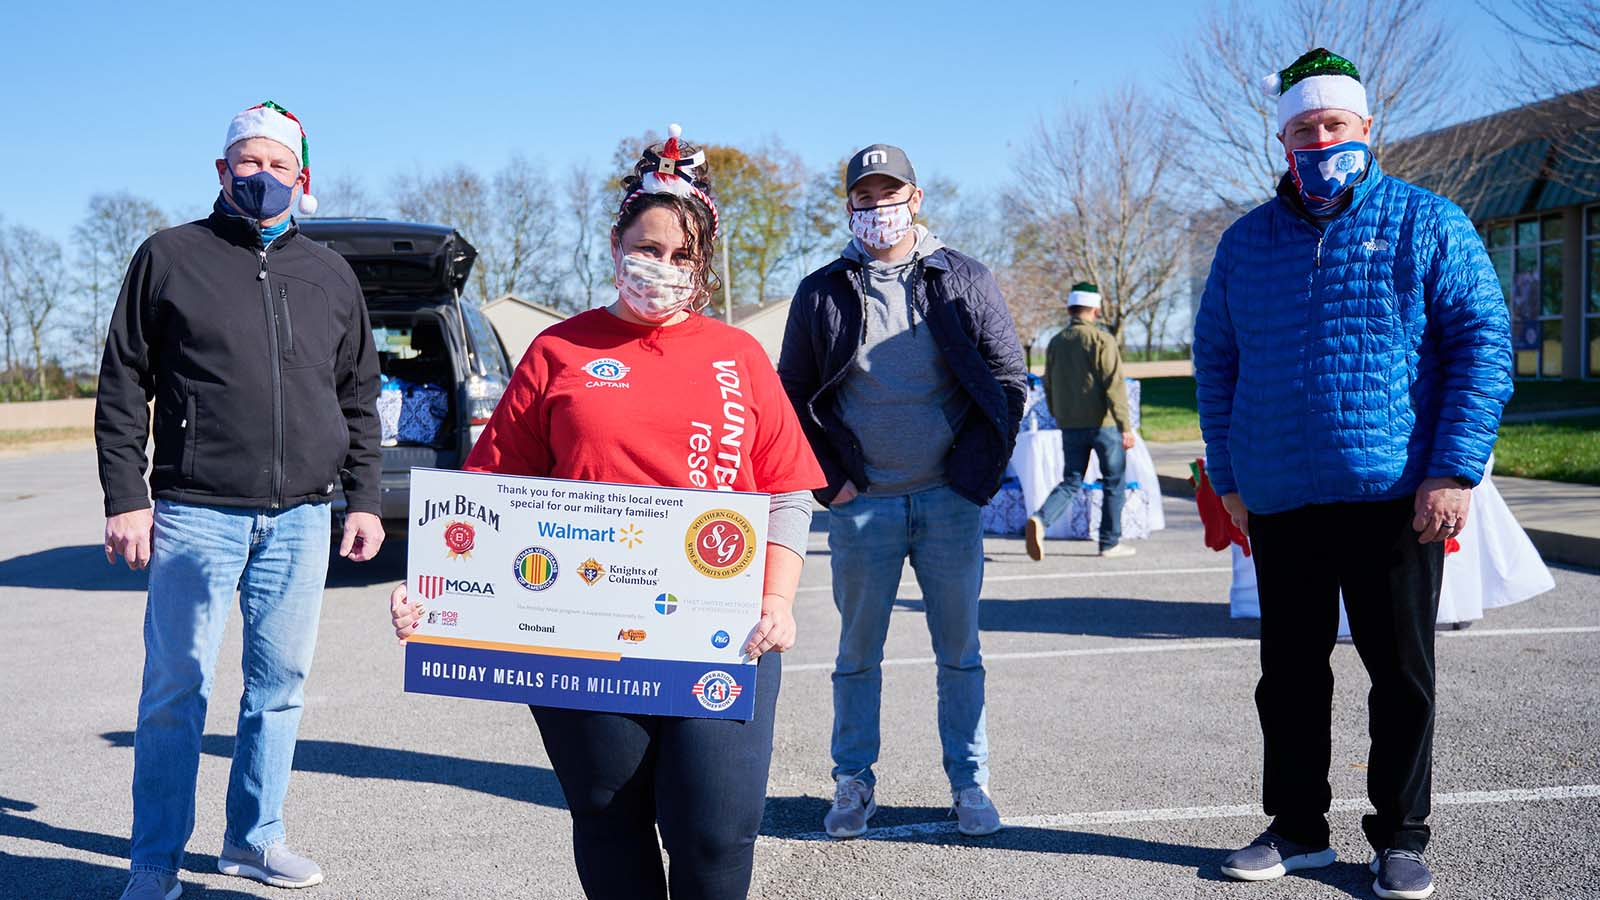 Four Operation Homefront volunteers standing outside in a parking lot holding a sign for the Holiday Meals for Military event.